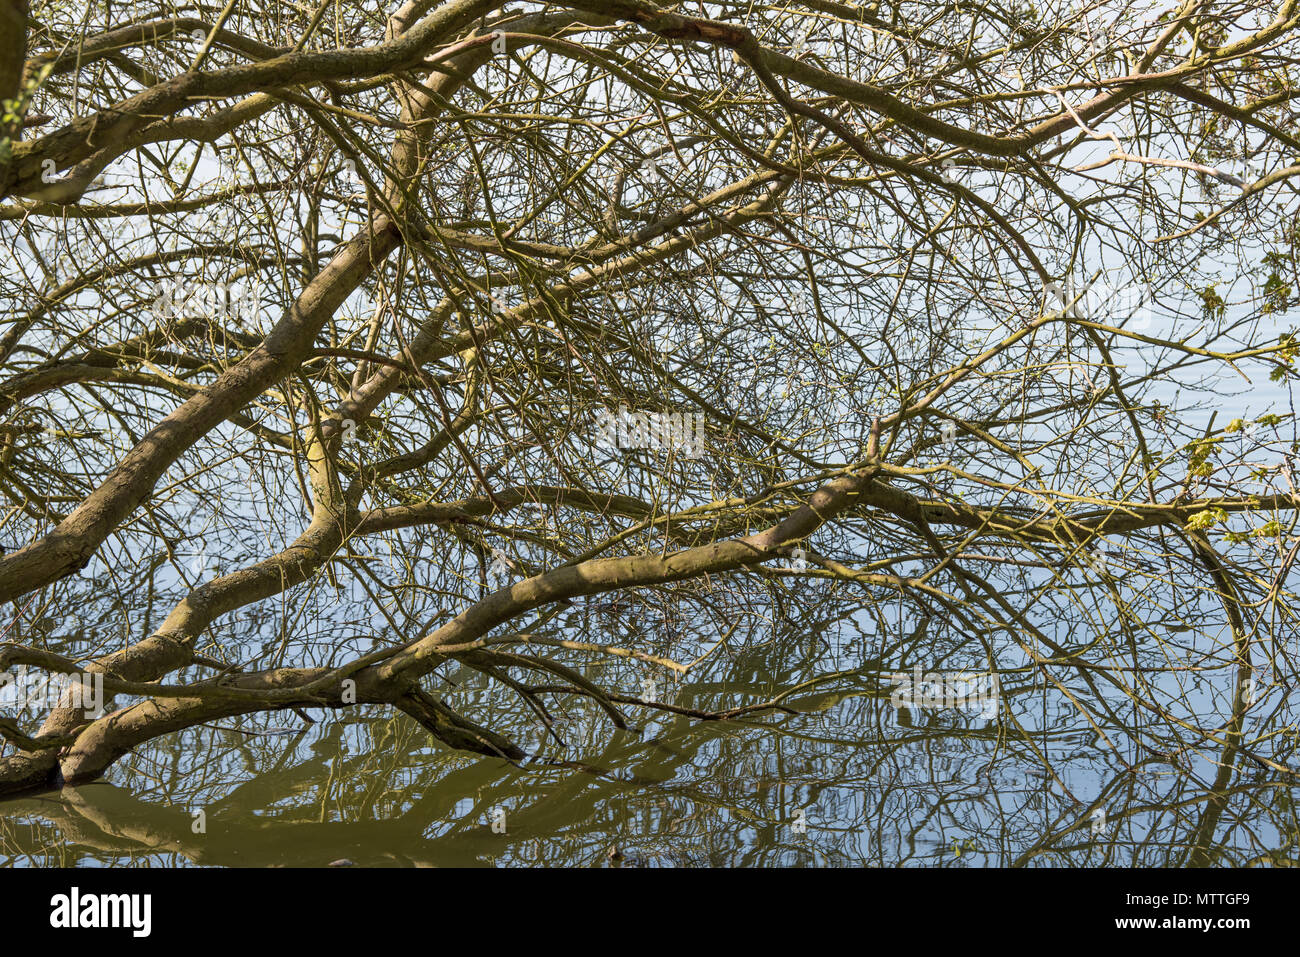 A mass of leafless branches with their reflections in the water of a lake. - Stock Image